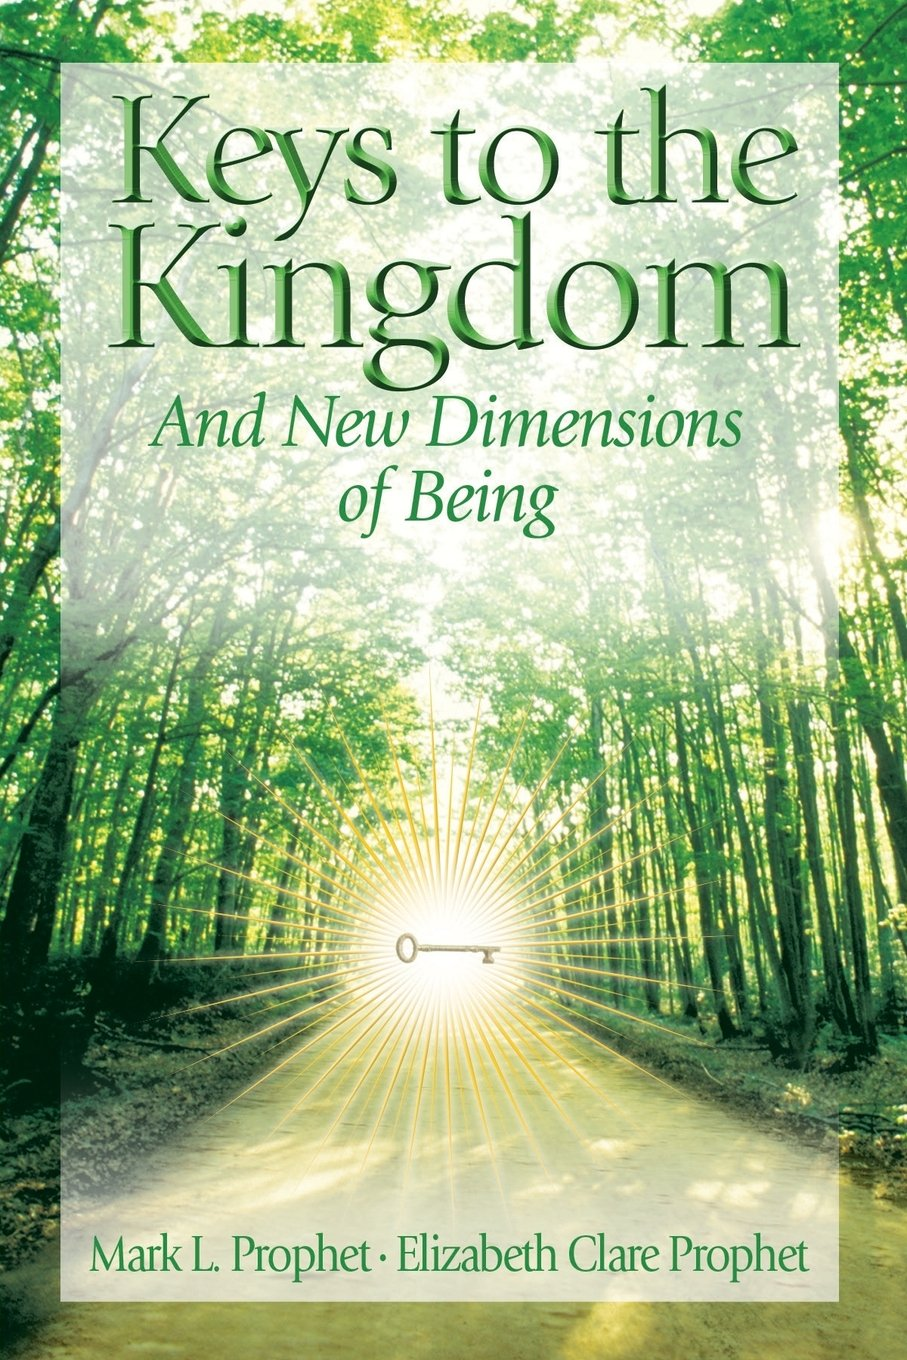 Download Keys to the Kingdom: And New Dimensions of Being PDF